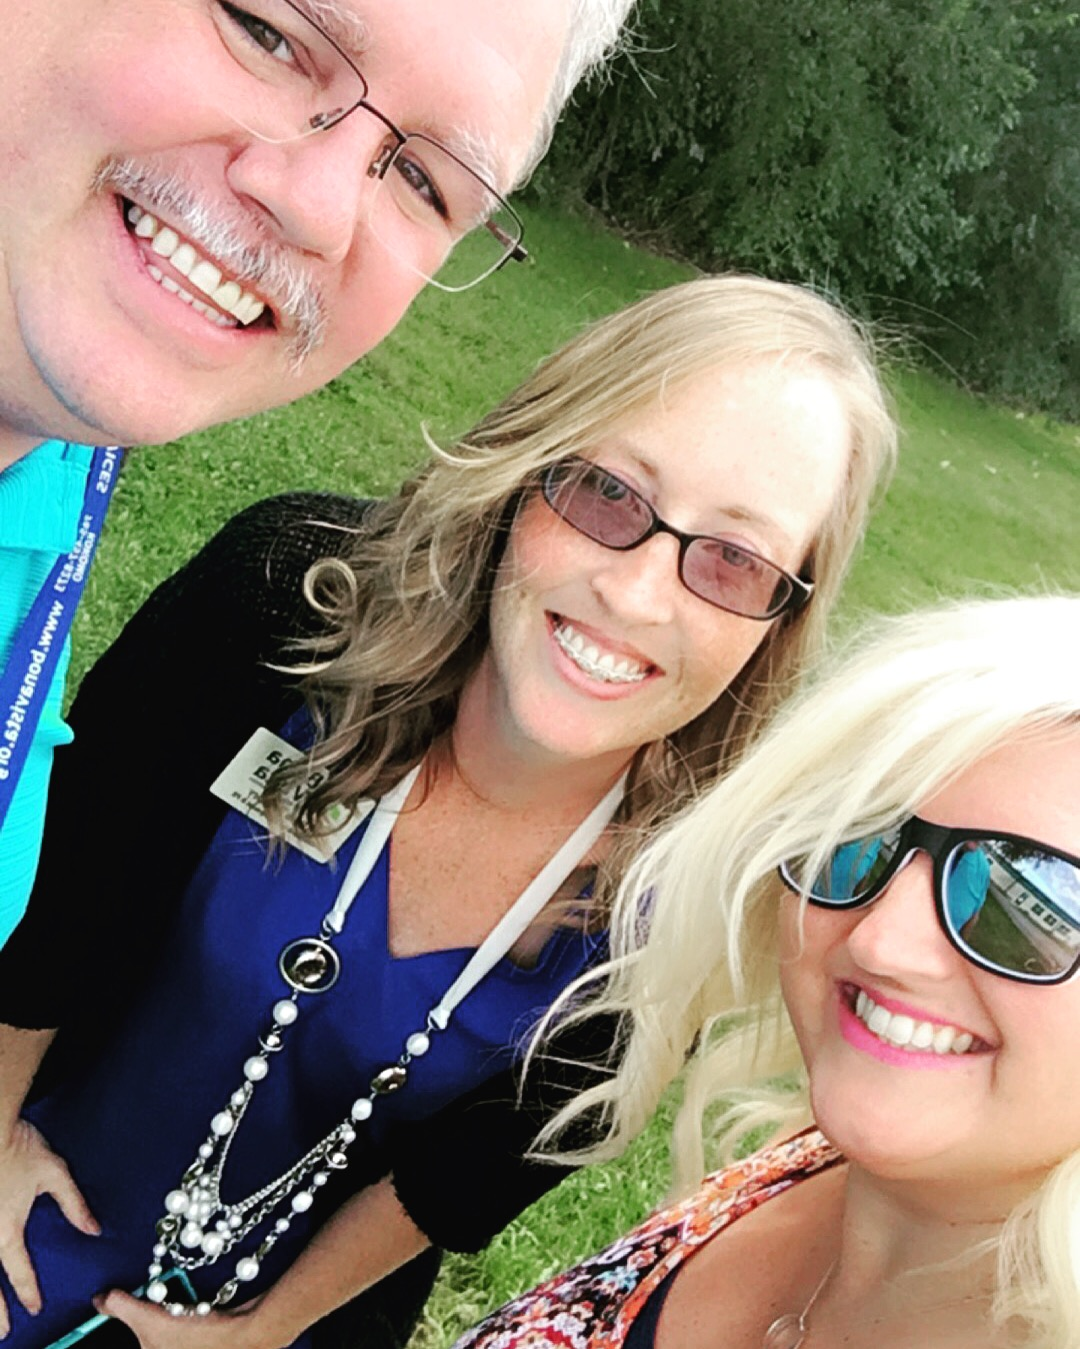 That's me... in the middle... with the rest of my amazing Dvelopment peeps -- Troy Bowers and Brittnee Smith.